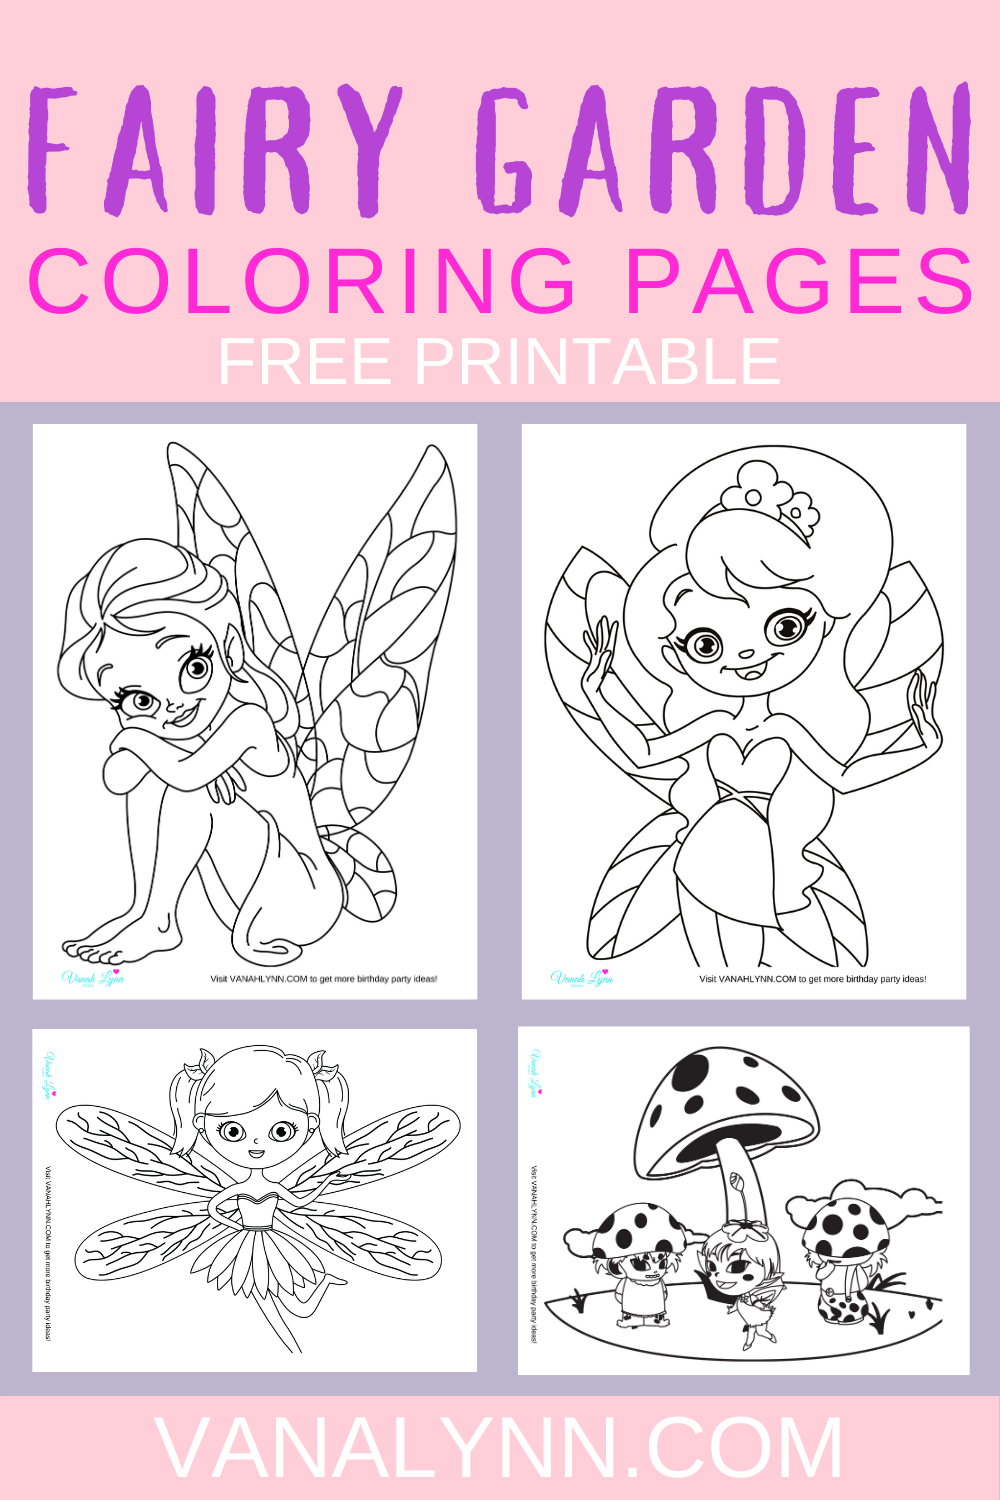 free download: Fairy garden coloring sheets for toddlers